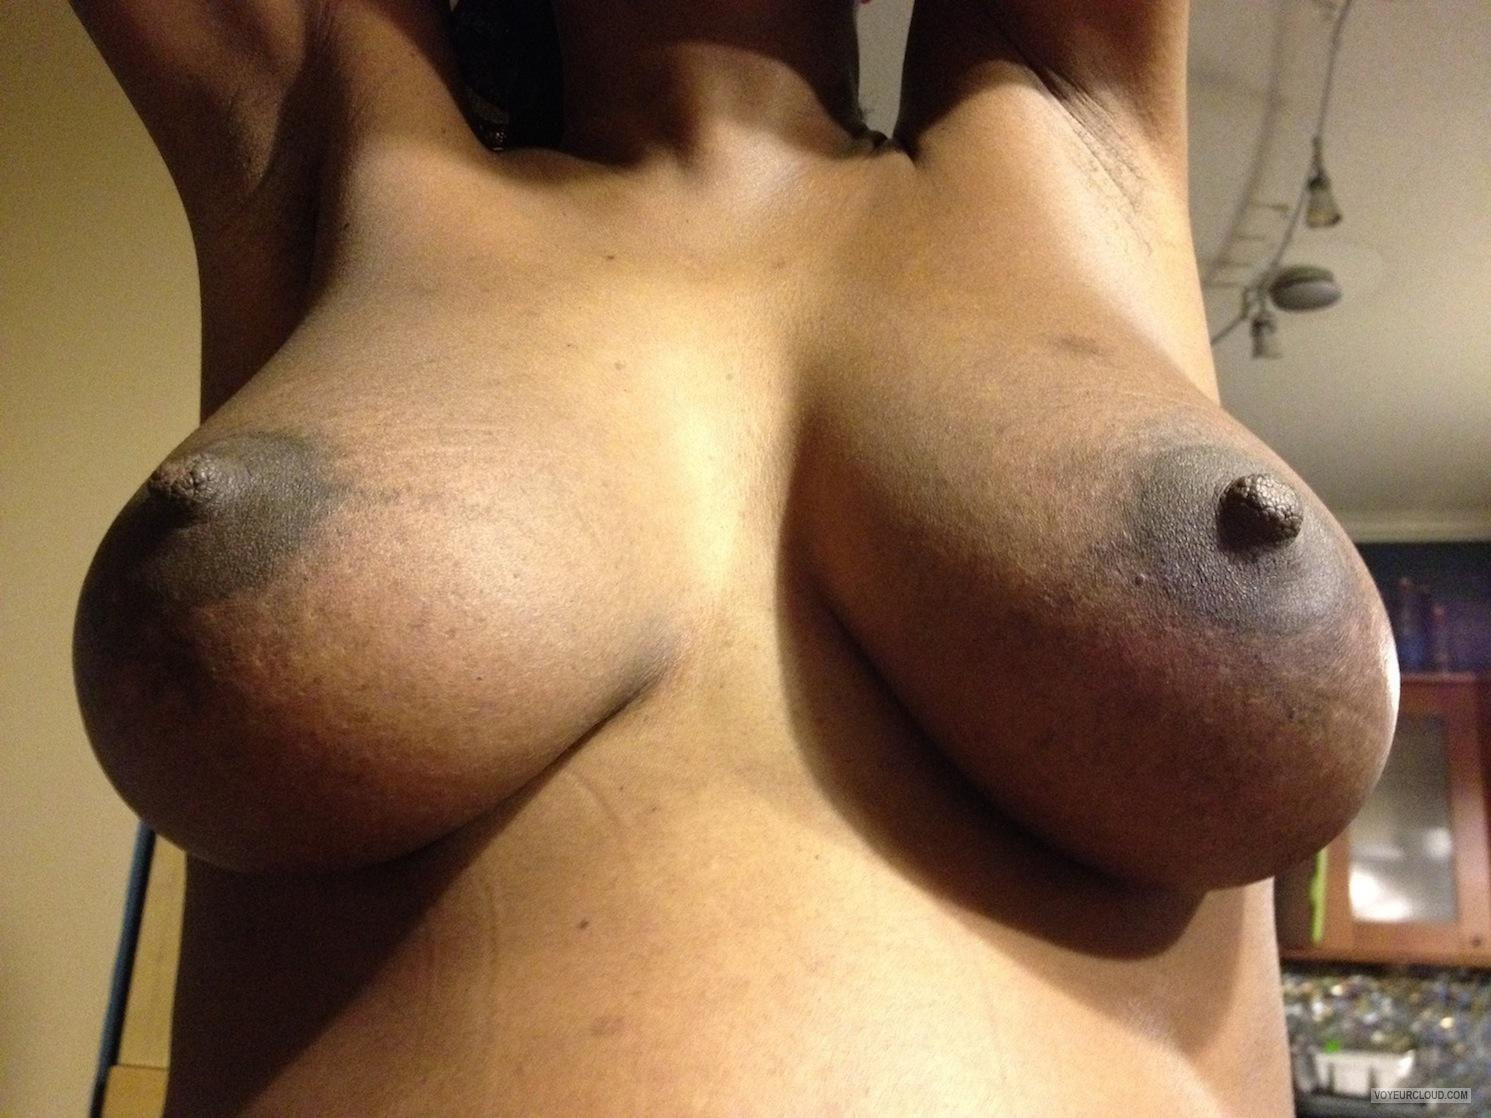 Very big Tits Of My Wife Bella